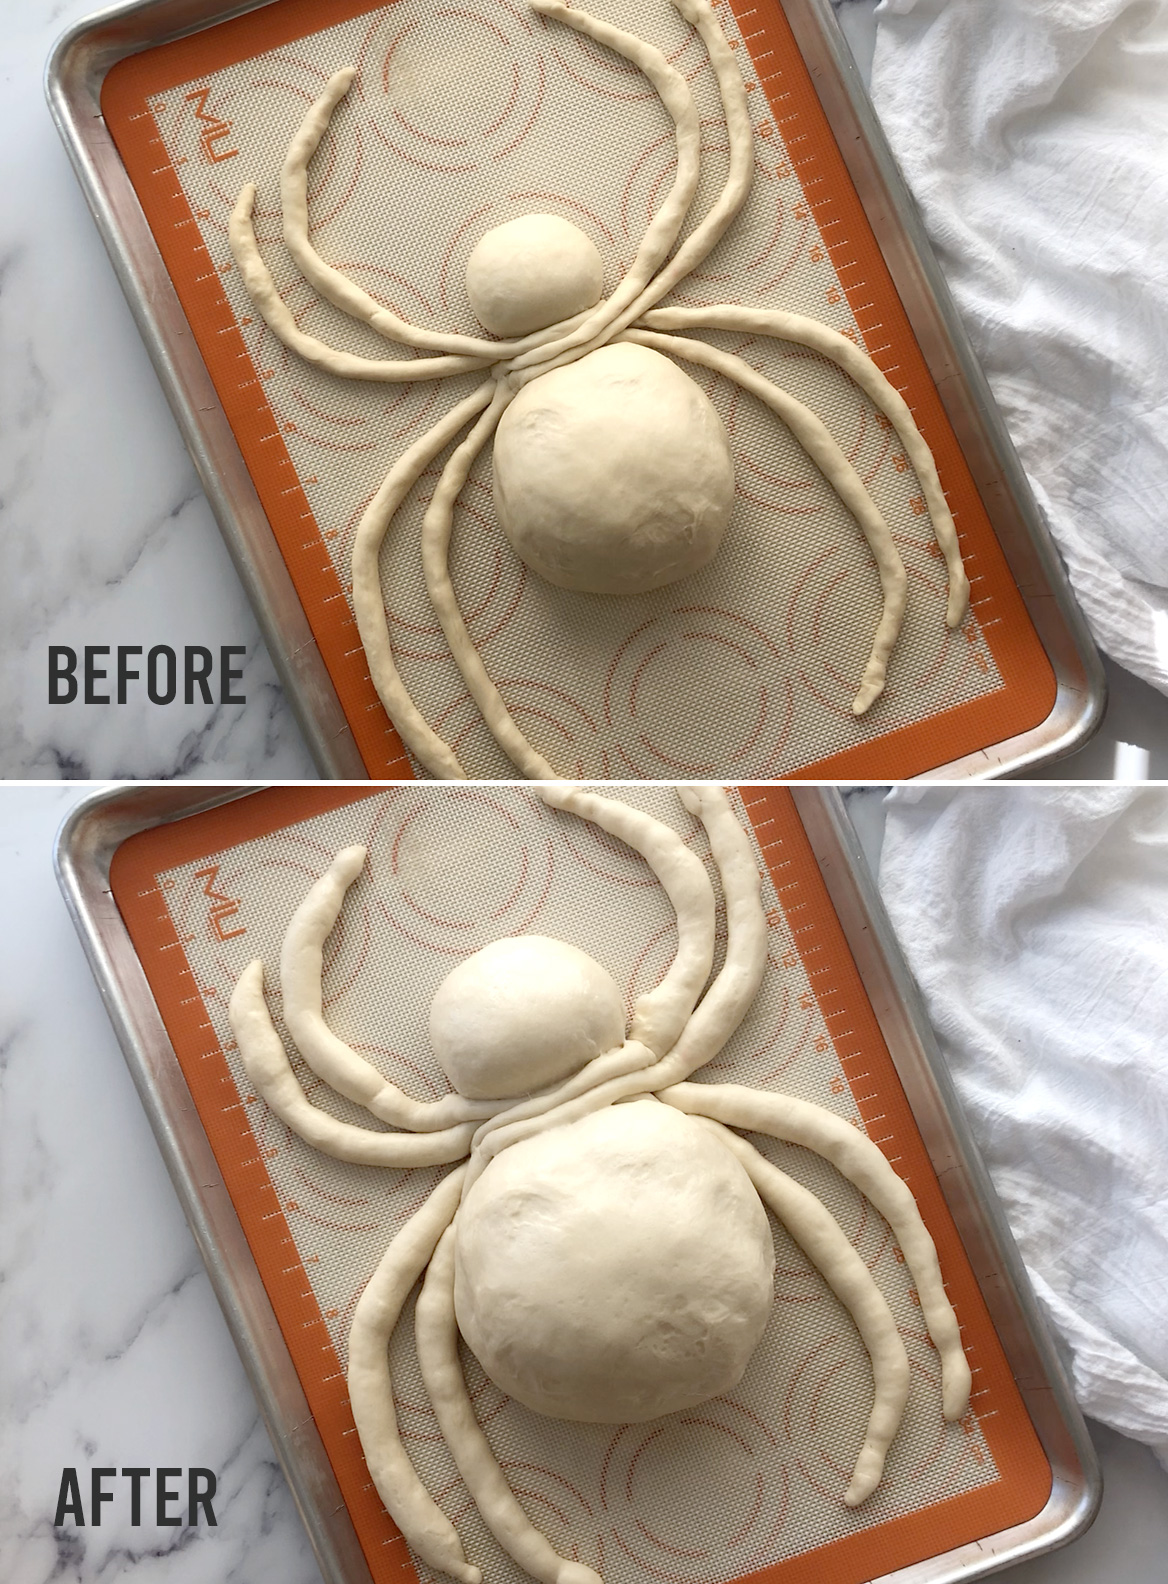 Halloween spider bread: before and after rising